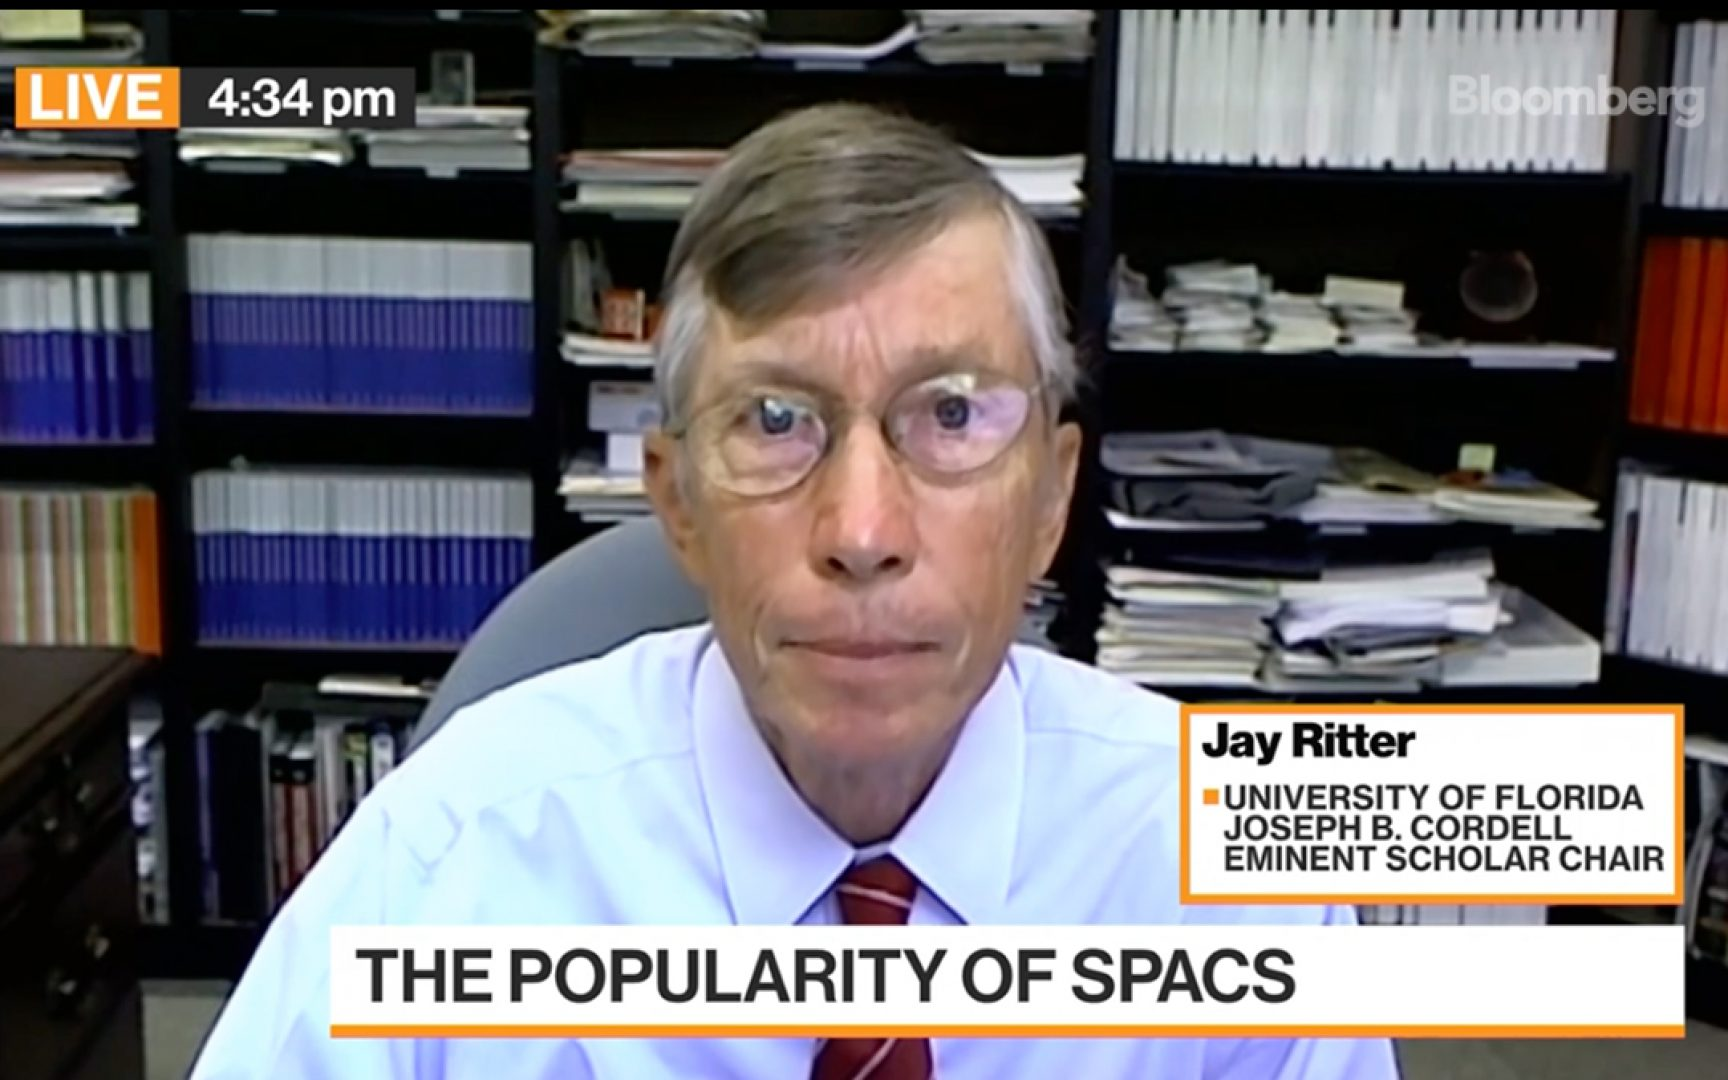 Jay Ritter speaks via Zoom. The lower-thirds line reads The popularity of SPACs.